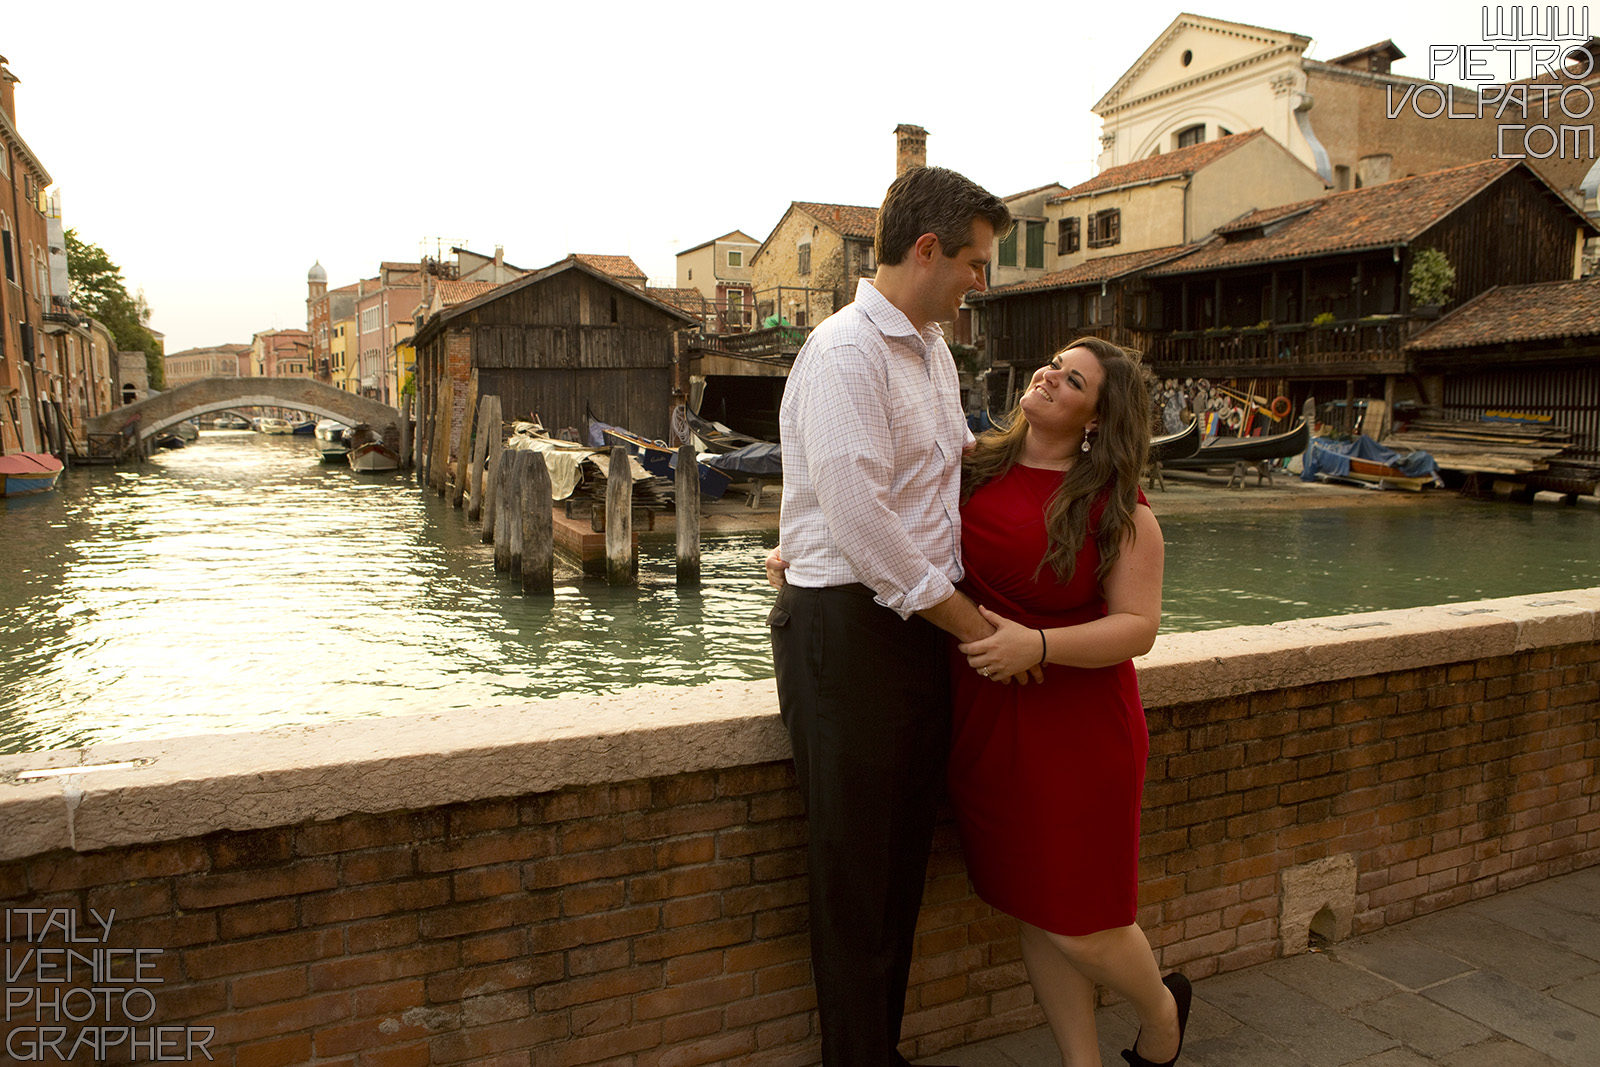 Photographer in Venice for honeymoon photography session during a romantic walking tour ~ Romantic couple vacation photo walk in Venice Italy